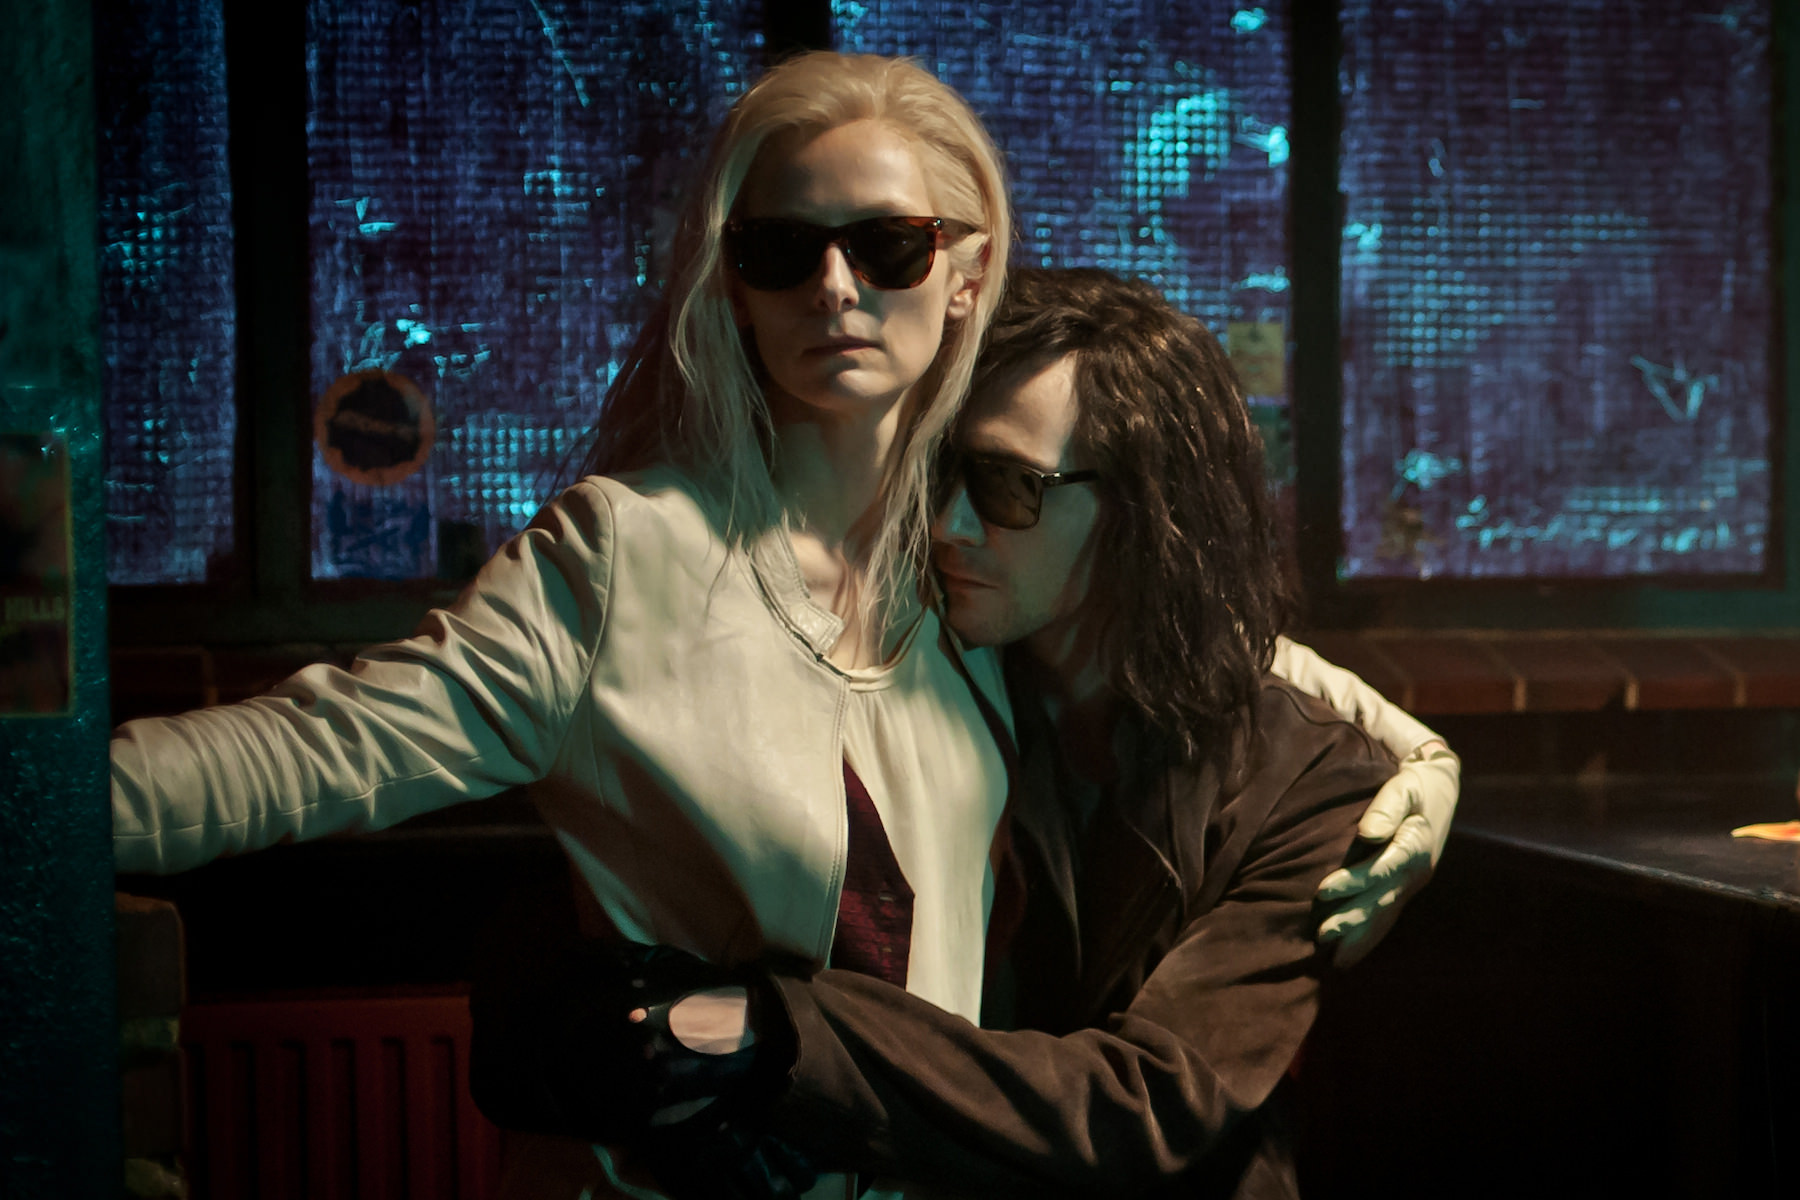 Only lovers left alive tilda swinton tom hiddleston